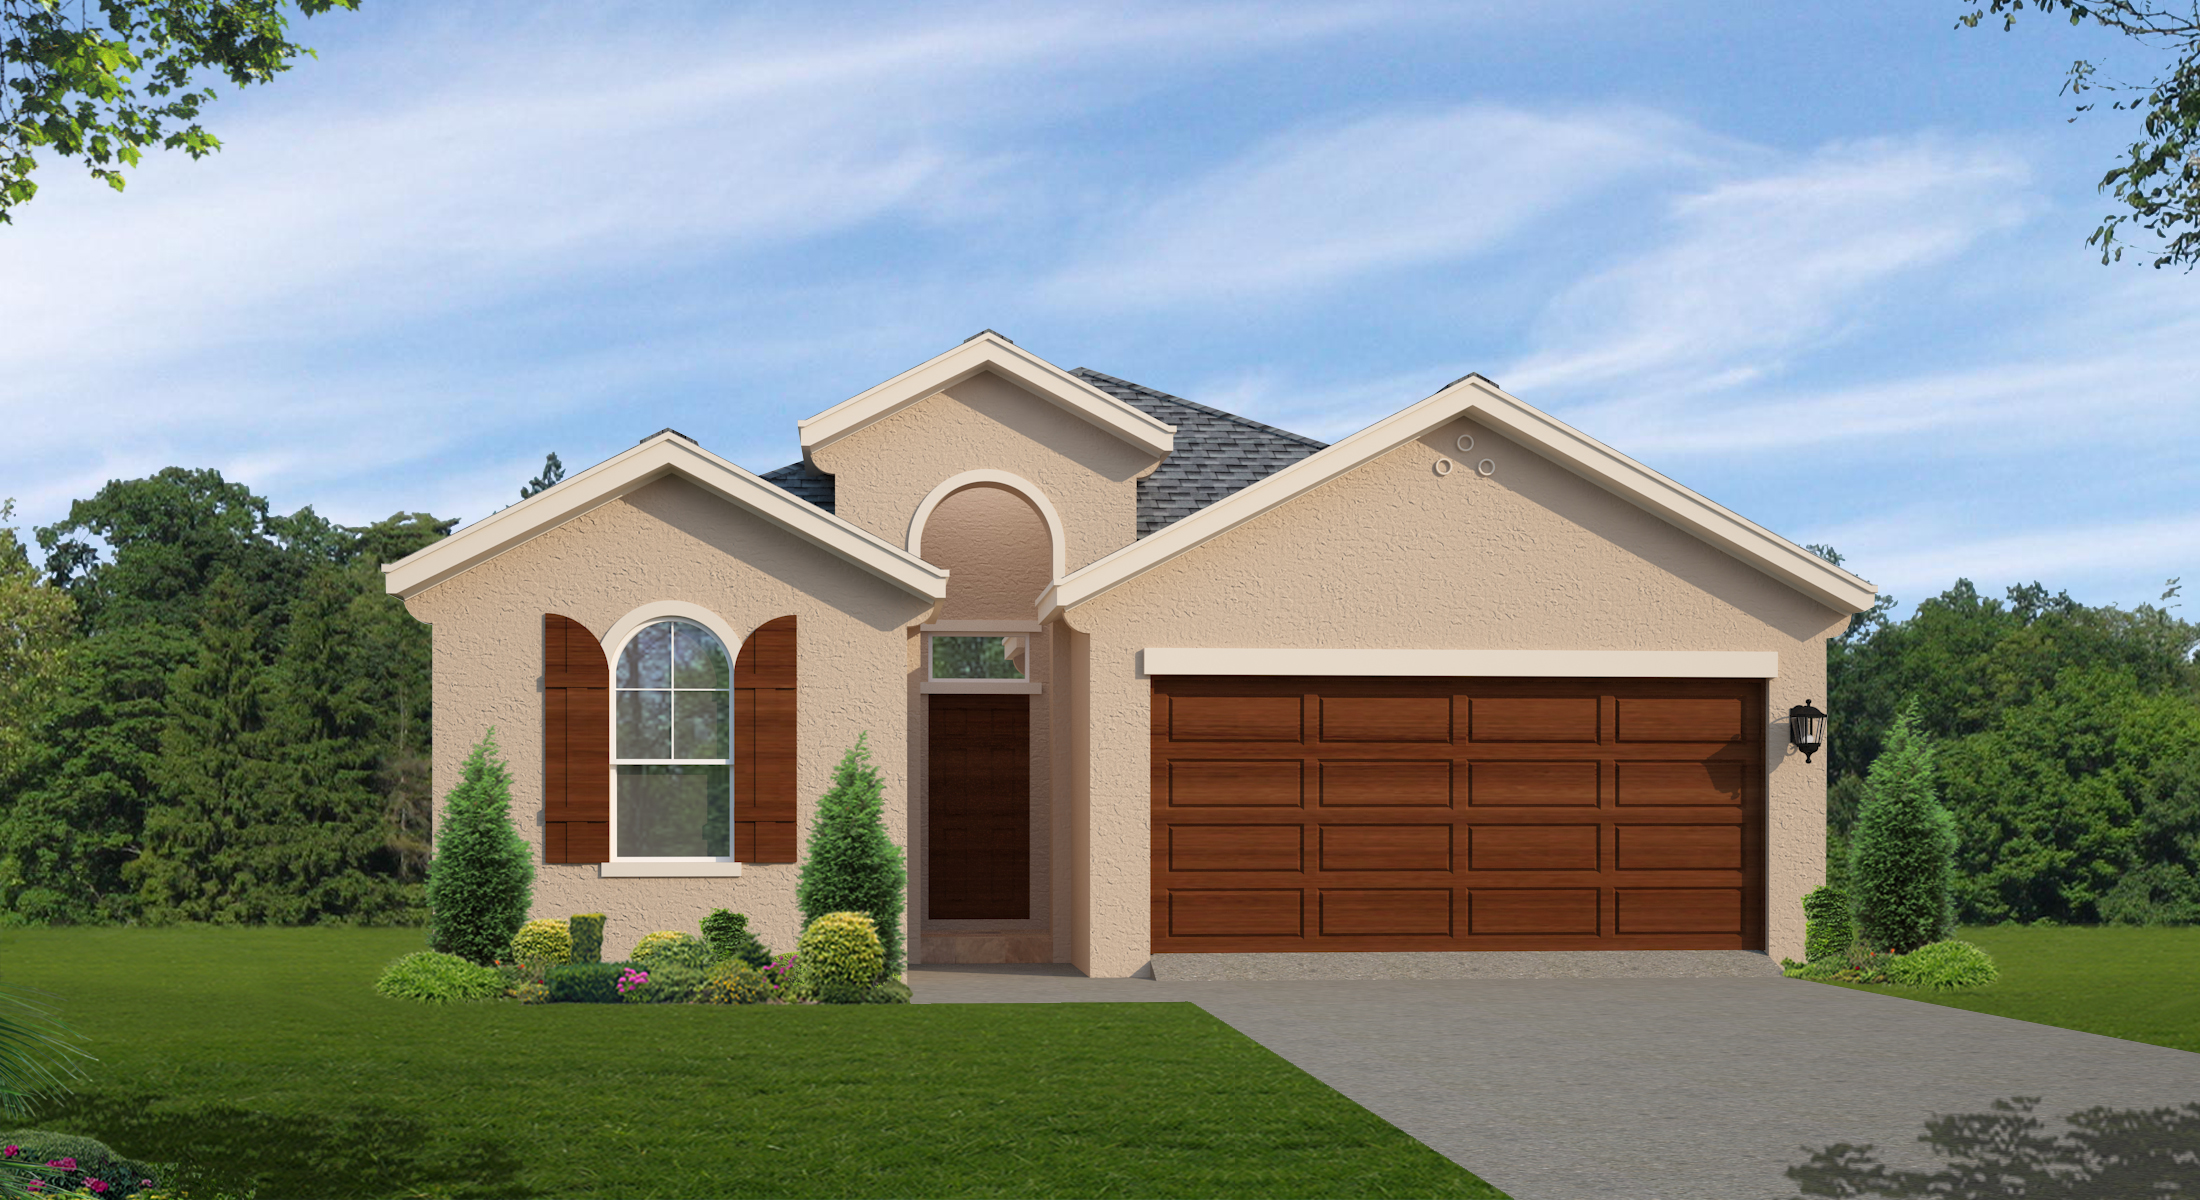 The Messina | Elevation C | $289,990